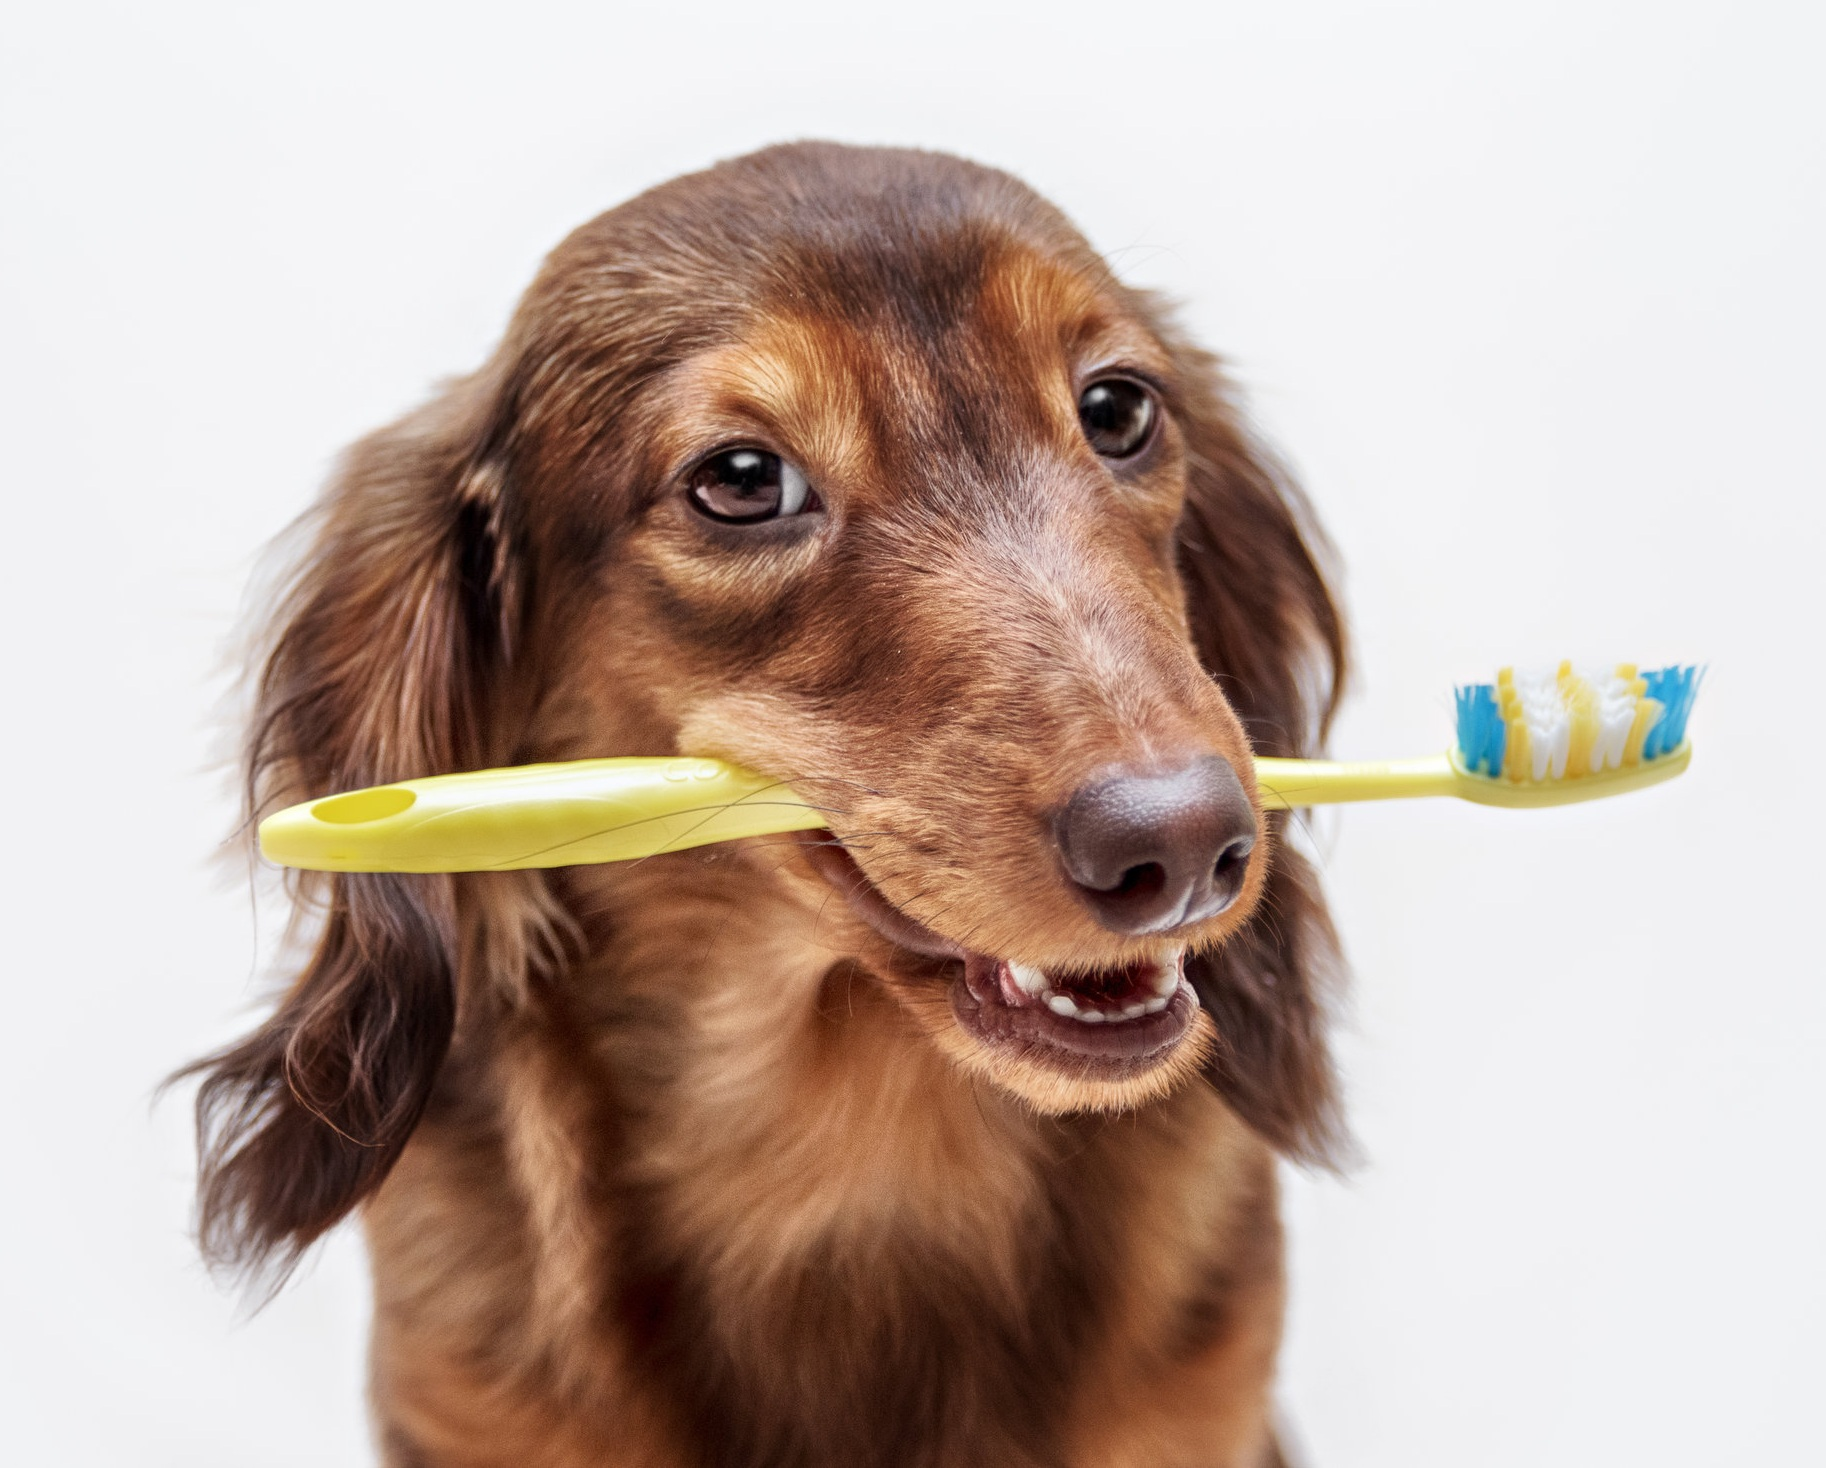 Experienced veterinarians for dog and cat dental